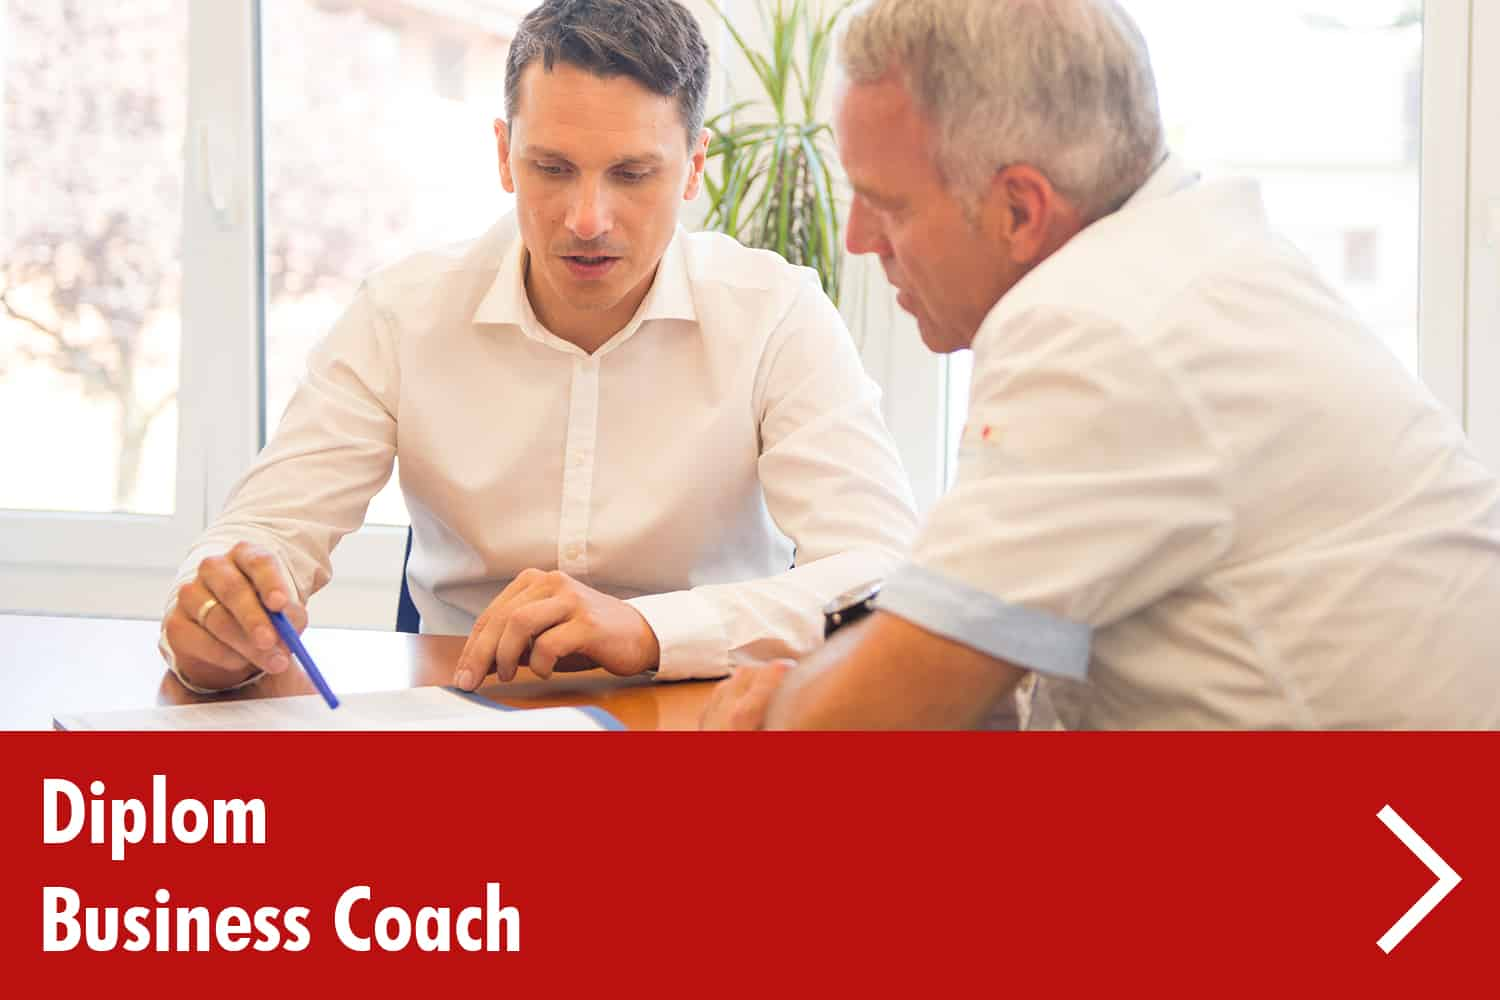 diplom-business-coach